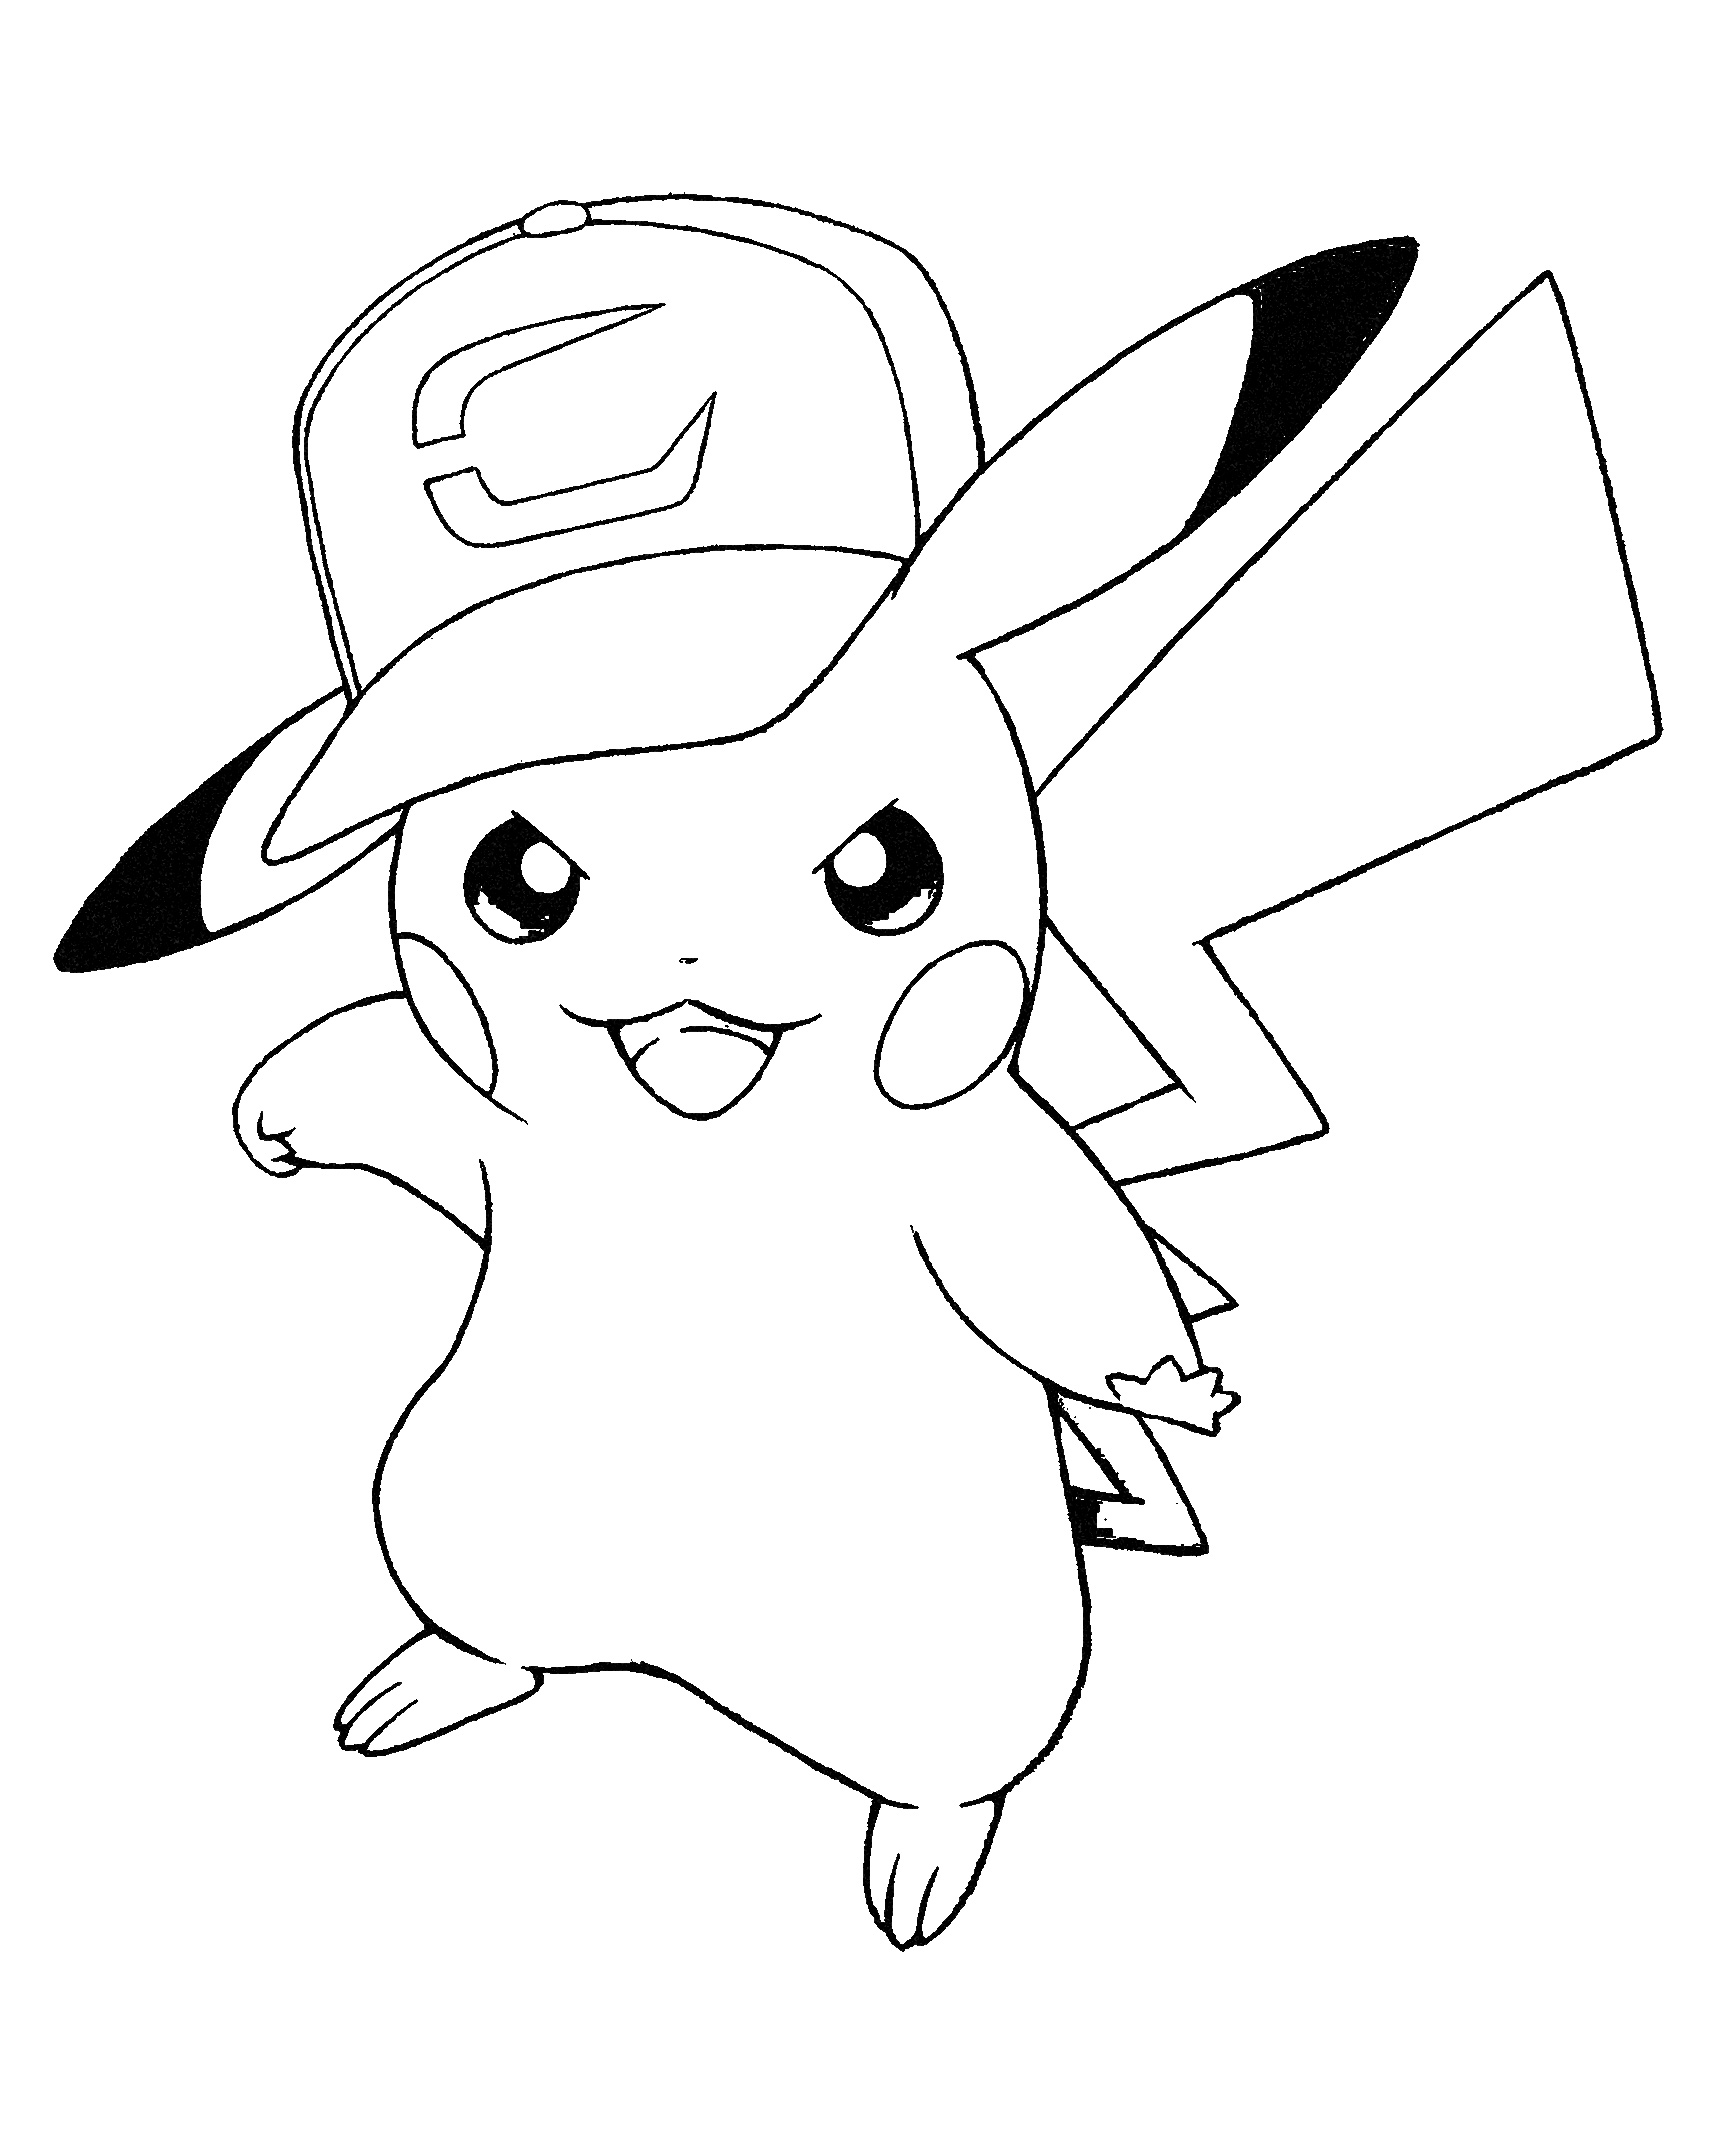 pikachu images for coloring pikachu coloring pages to download and print for free images for pikachu coloring